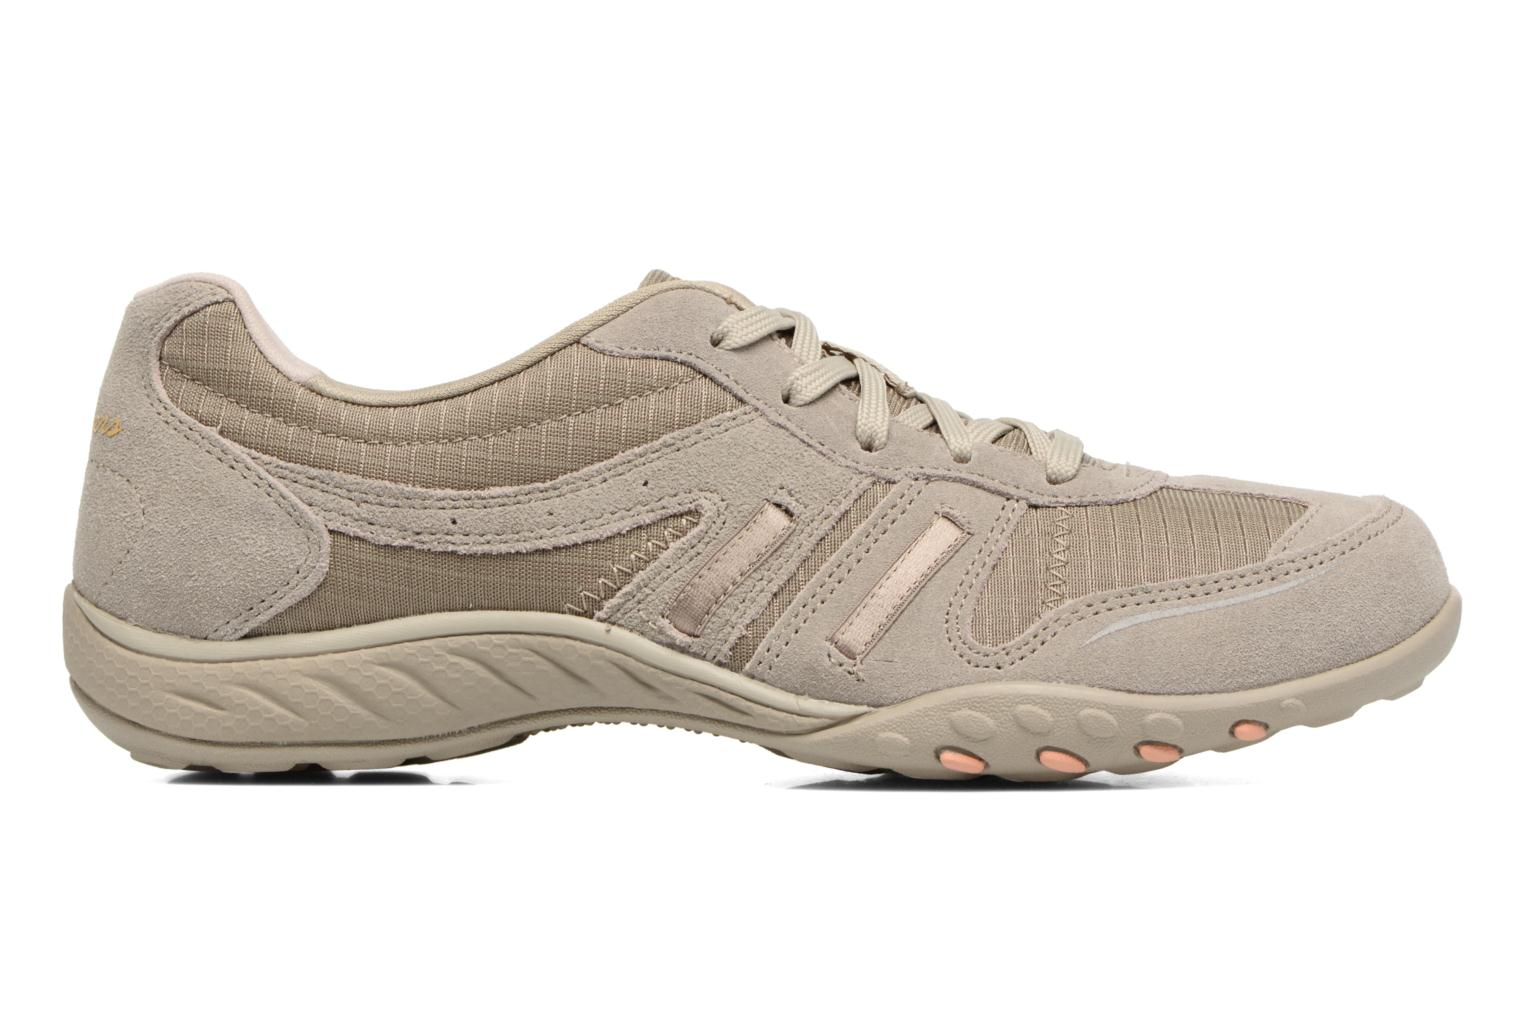 Baskets Skechers Breathe-Easy - Jackpot 22532 Beige vue derrière